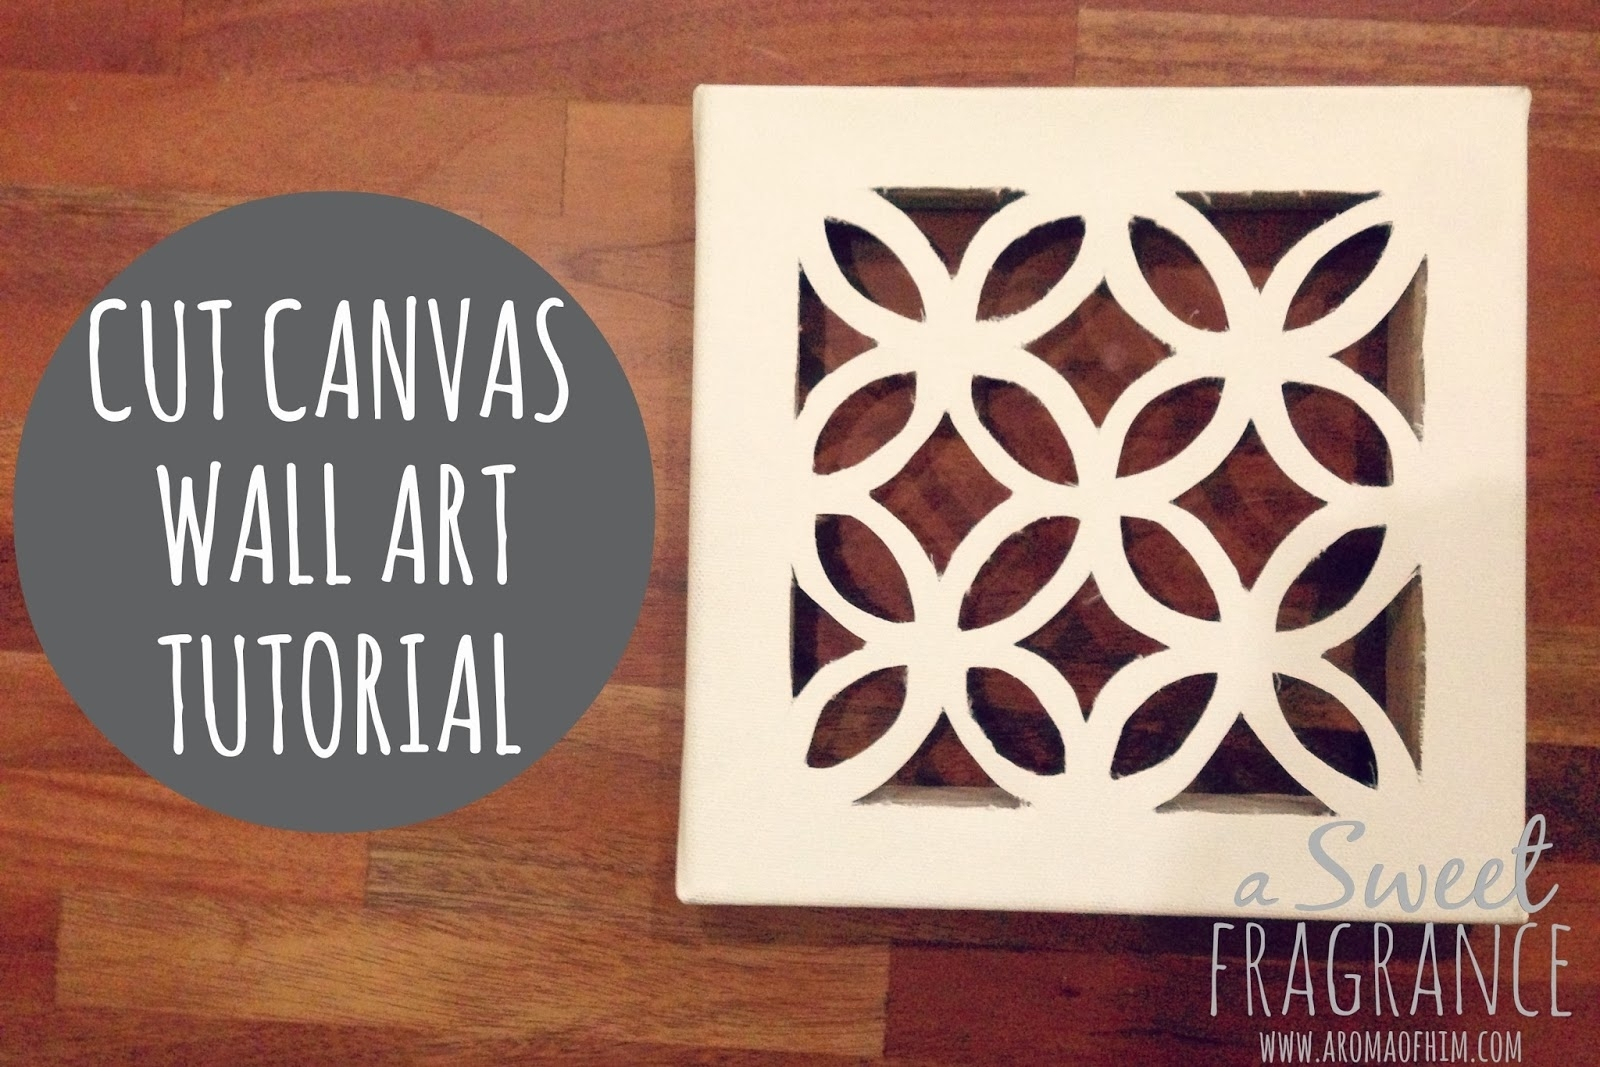 Diy Cut Canvas Wall Art That Looks Expensive But Is Cheap To Make With 2018 Diy Canvas Wall Art (View 8 of 15)